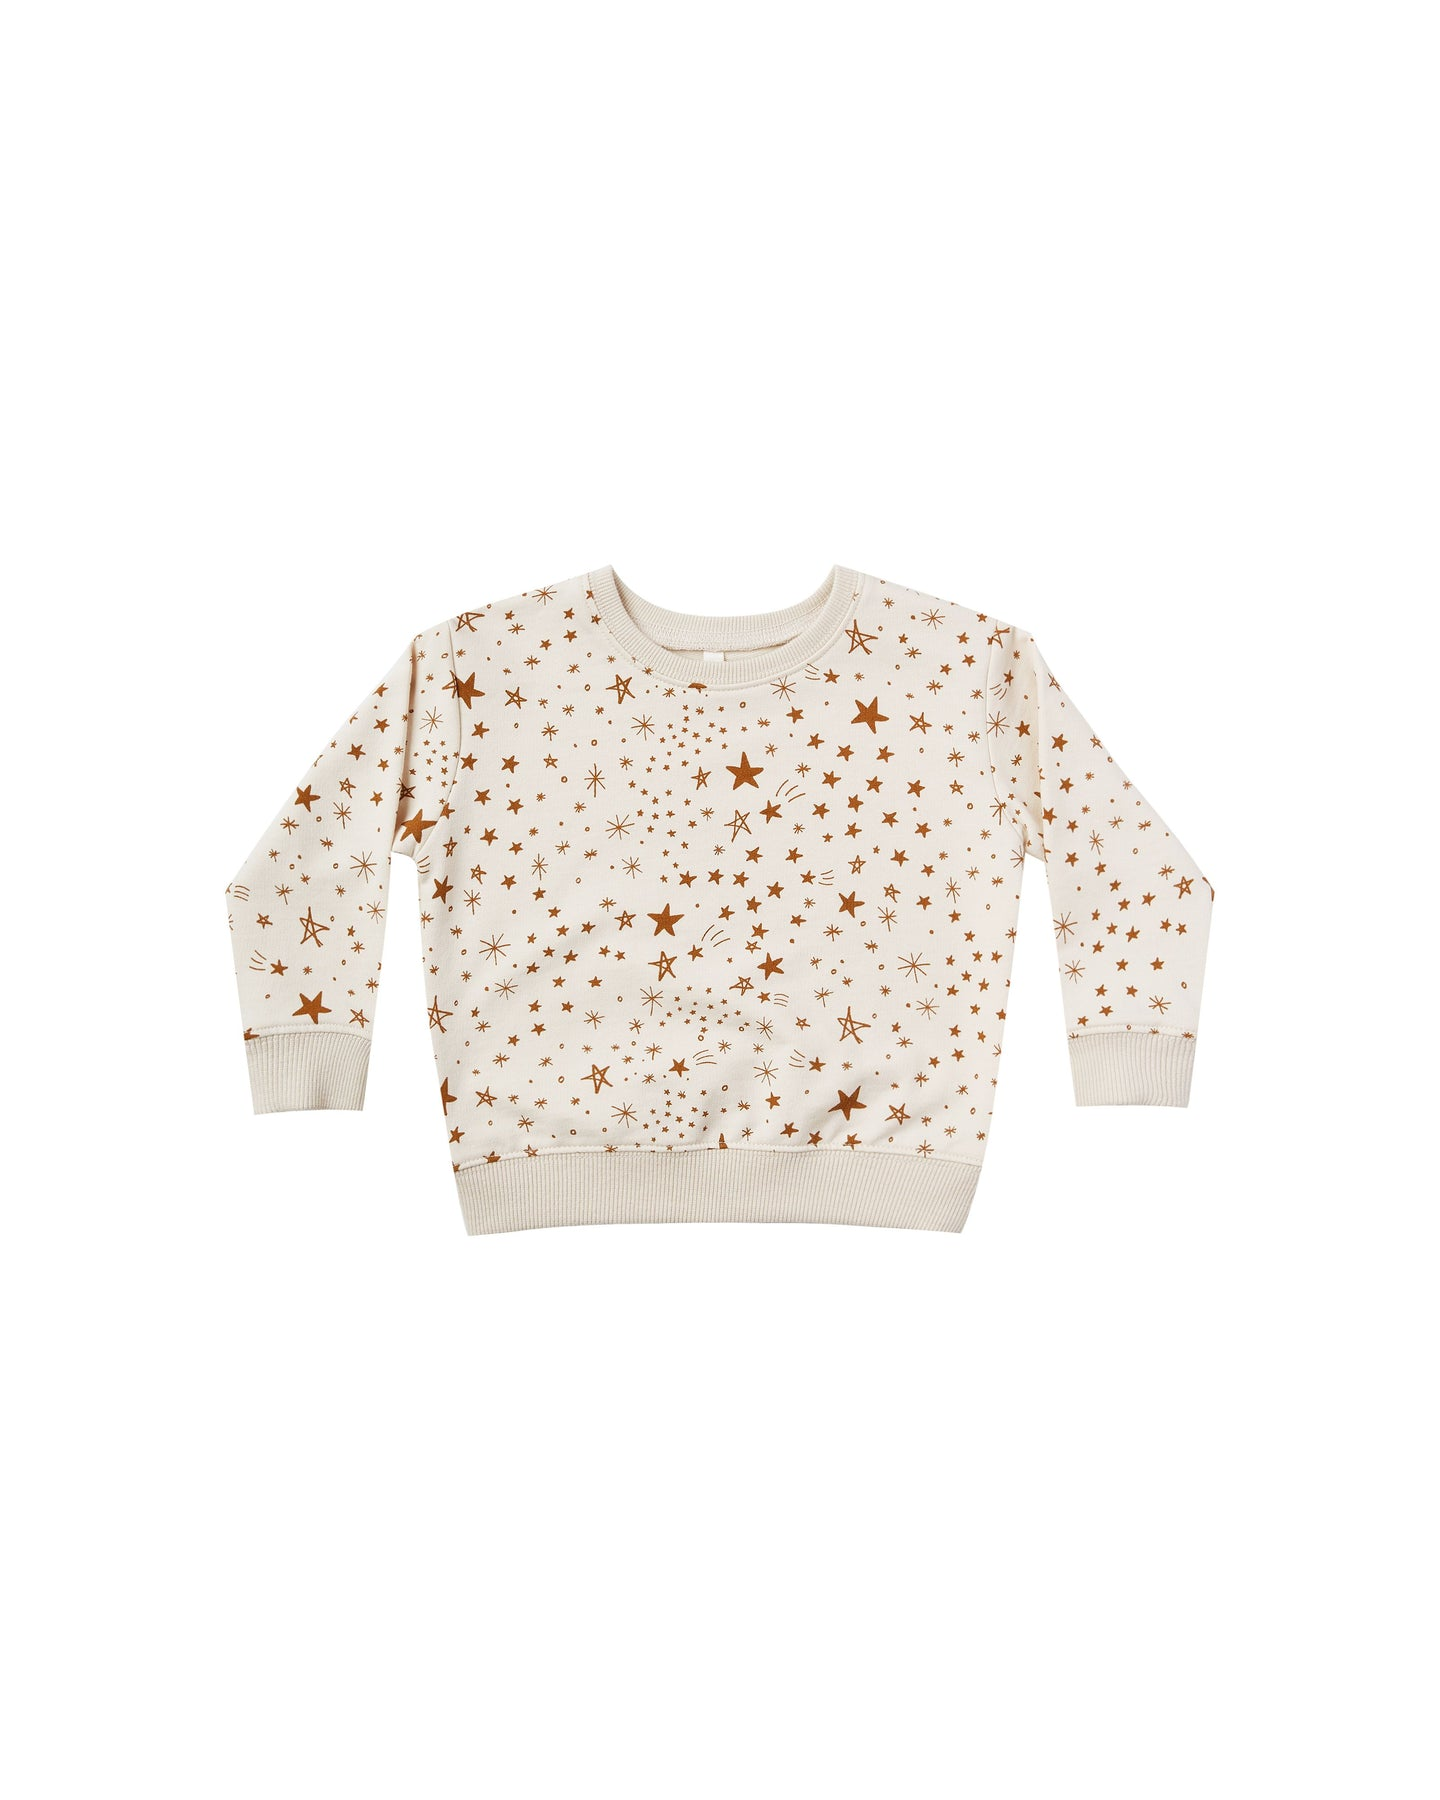 Rylee + Cru - Starburst Sweatshirt Frech Terry Fleece - Natural